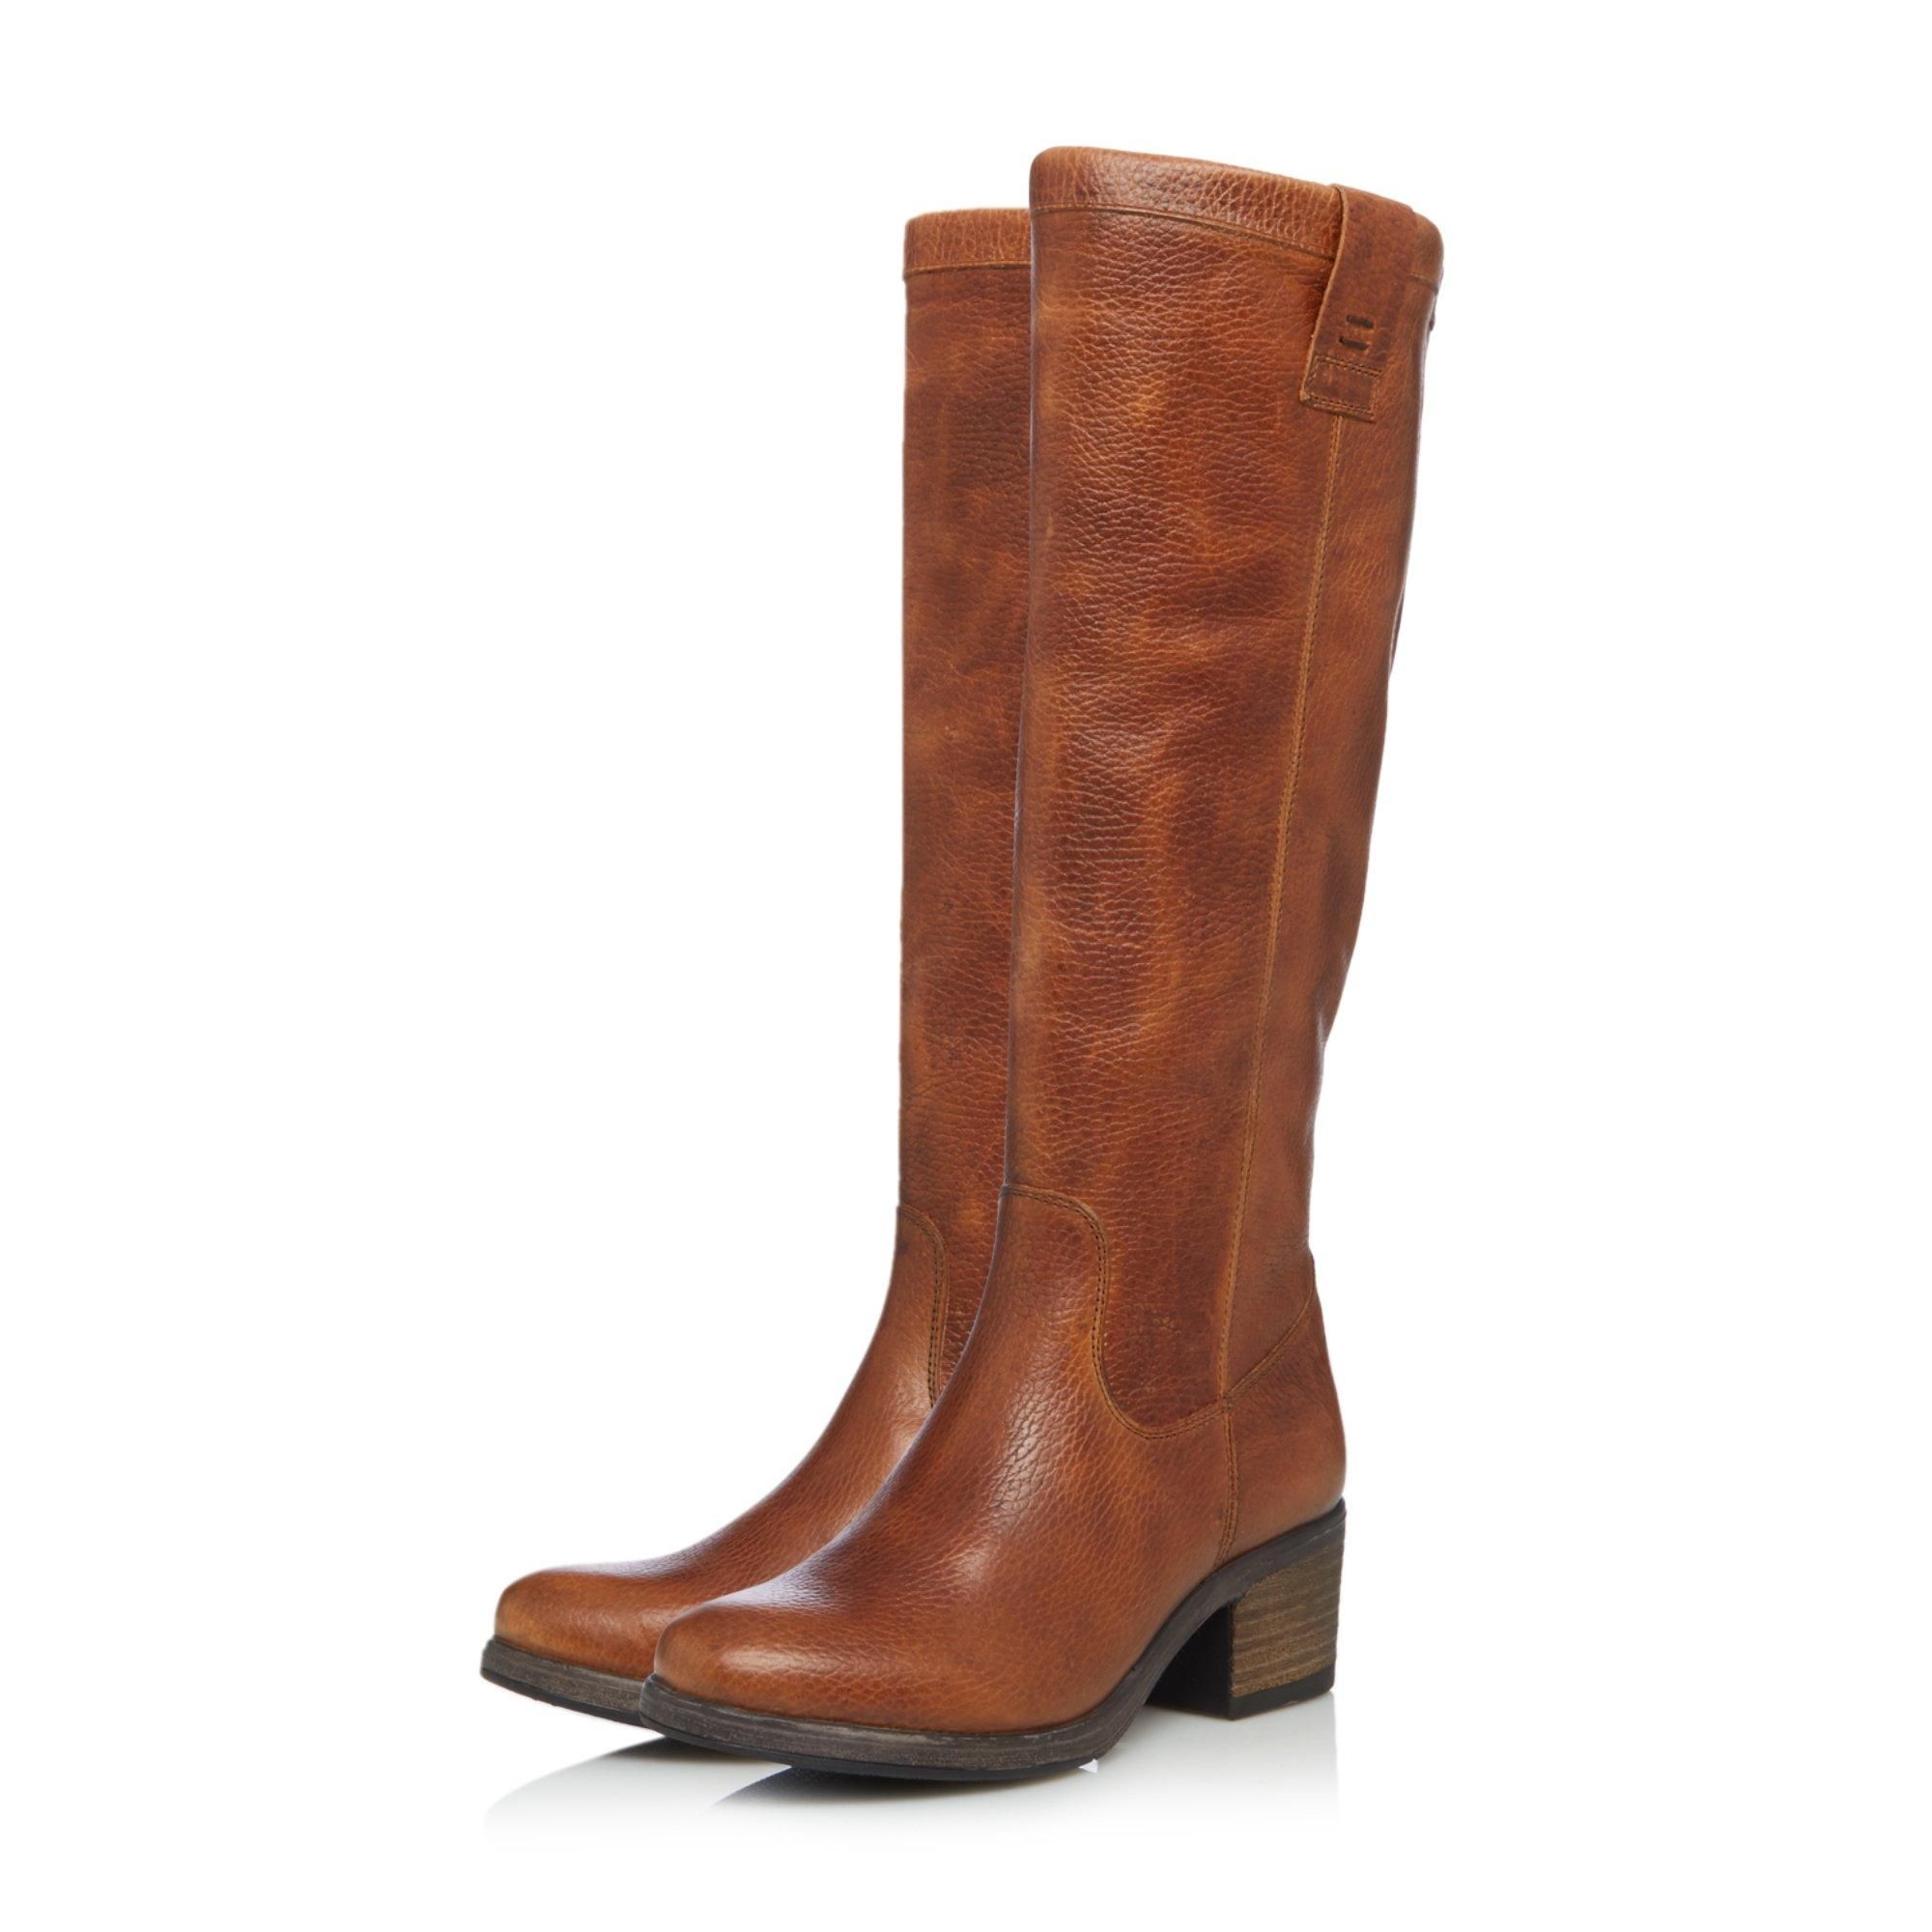 Bertie Ladies TYRUS Soft Leather Knee High Boots